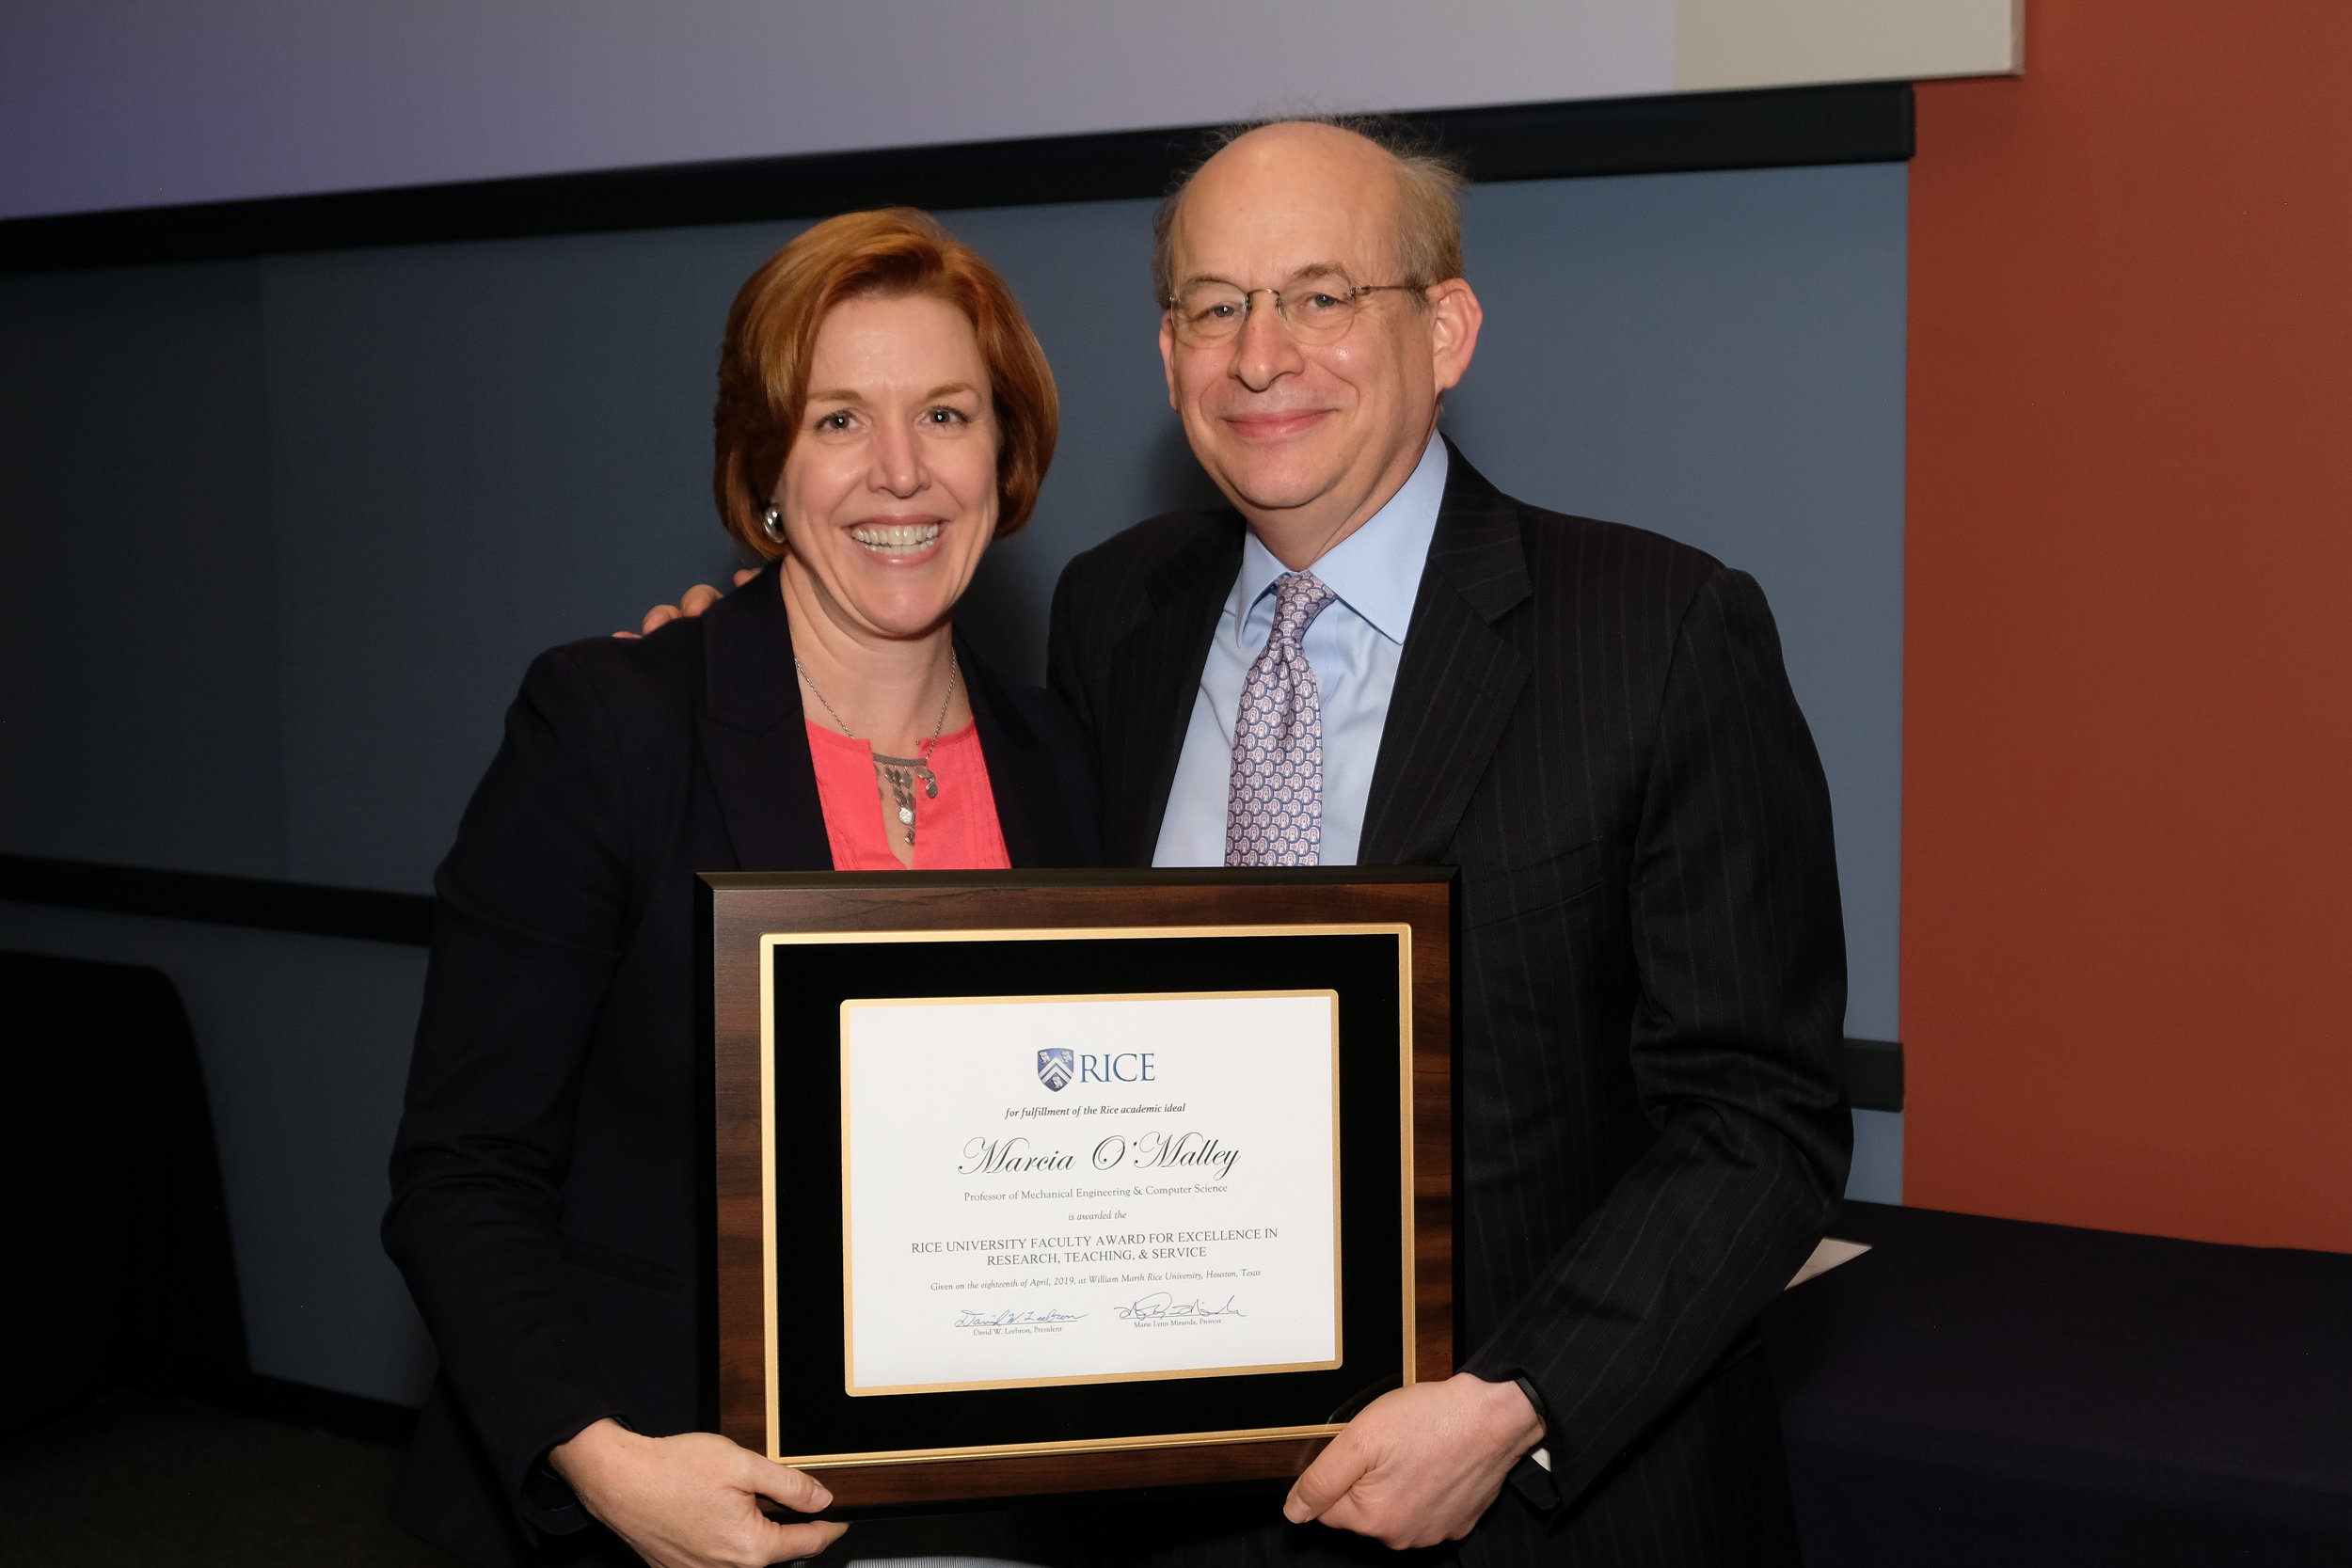 President Leebron & Marcia O'Malley, Rice University Faculty Award for Excellence in Research, Teaching, and Service